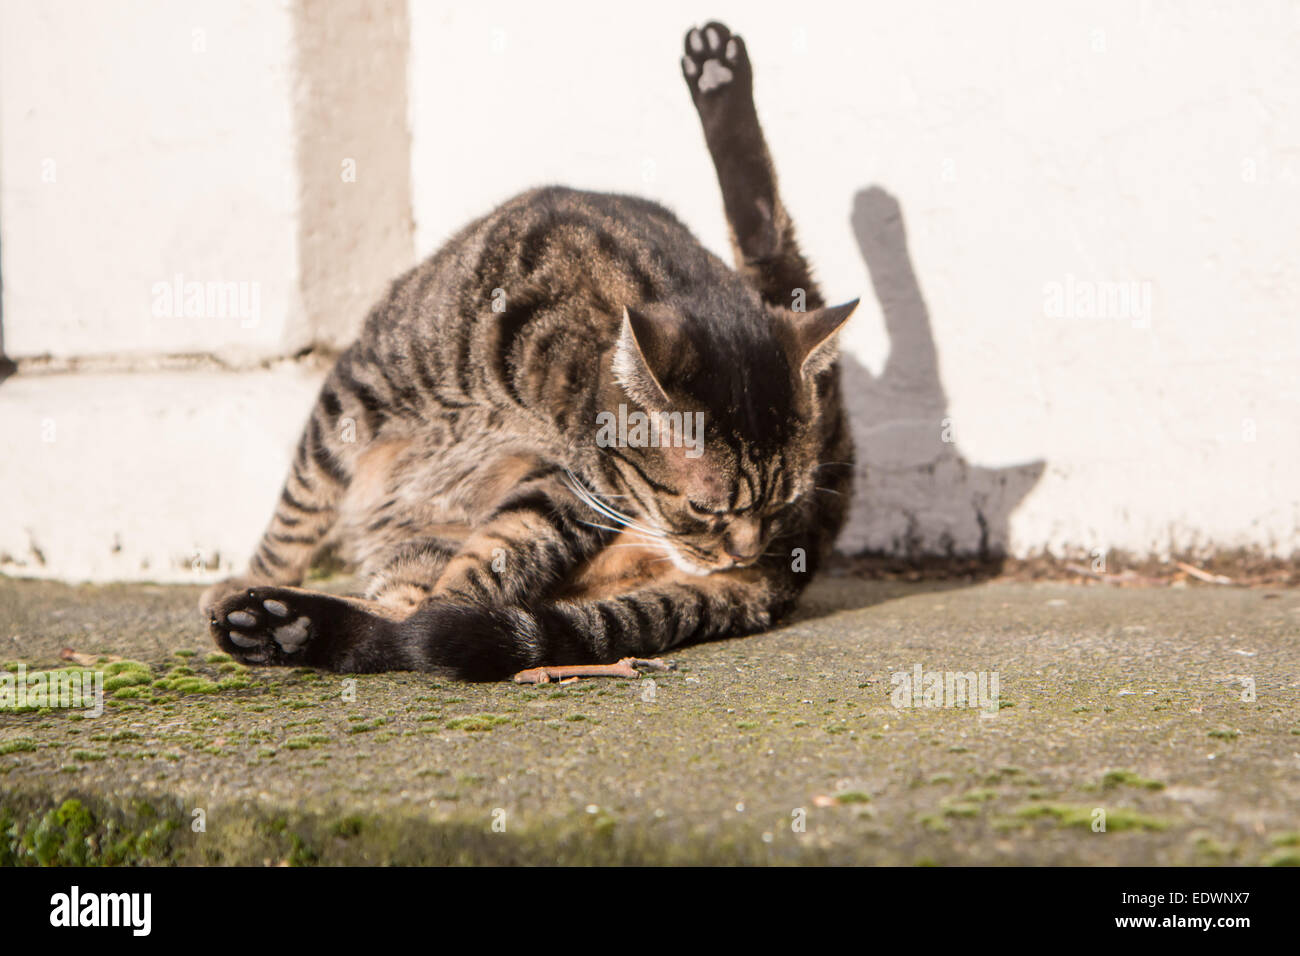 Cat licking its bum in the sun - Stock Image